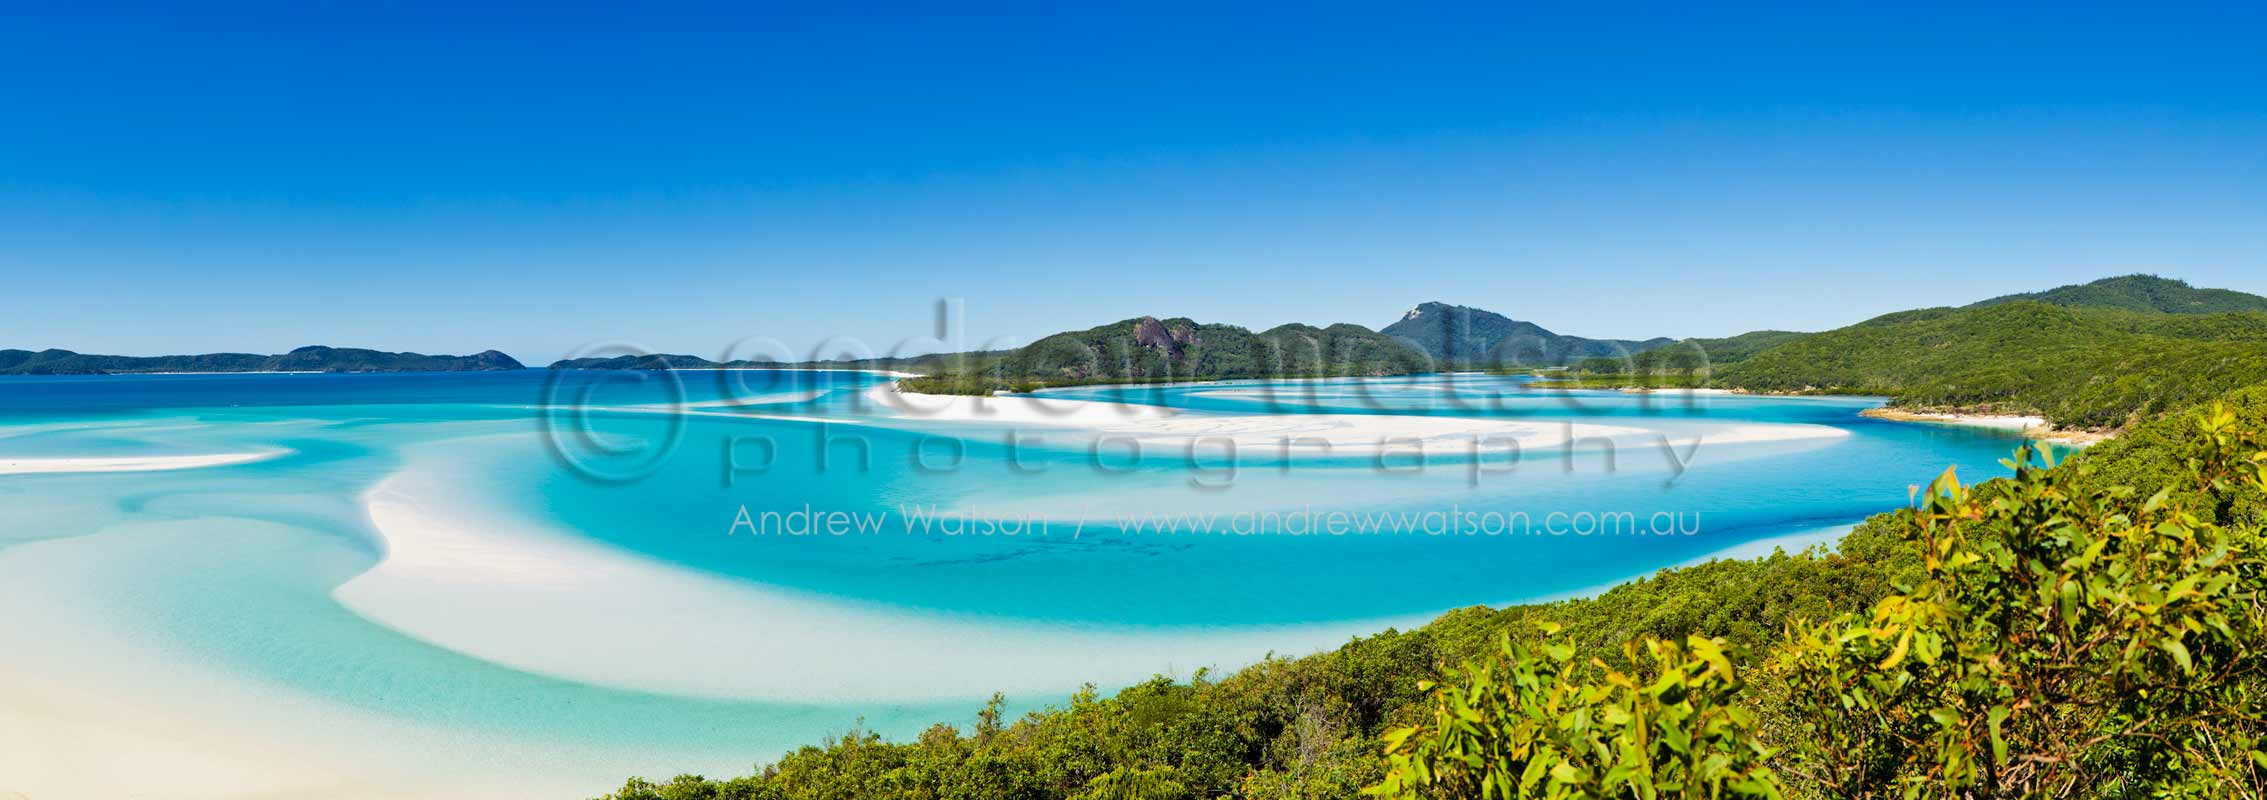 Shifting coloured sands of Hill InletWhitsundays, North QueenslandImage available for licensing or as a fine-art print... please enquire